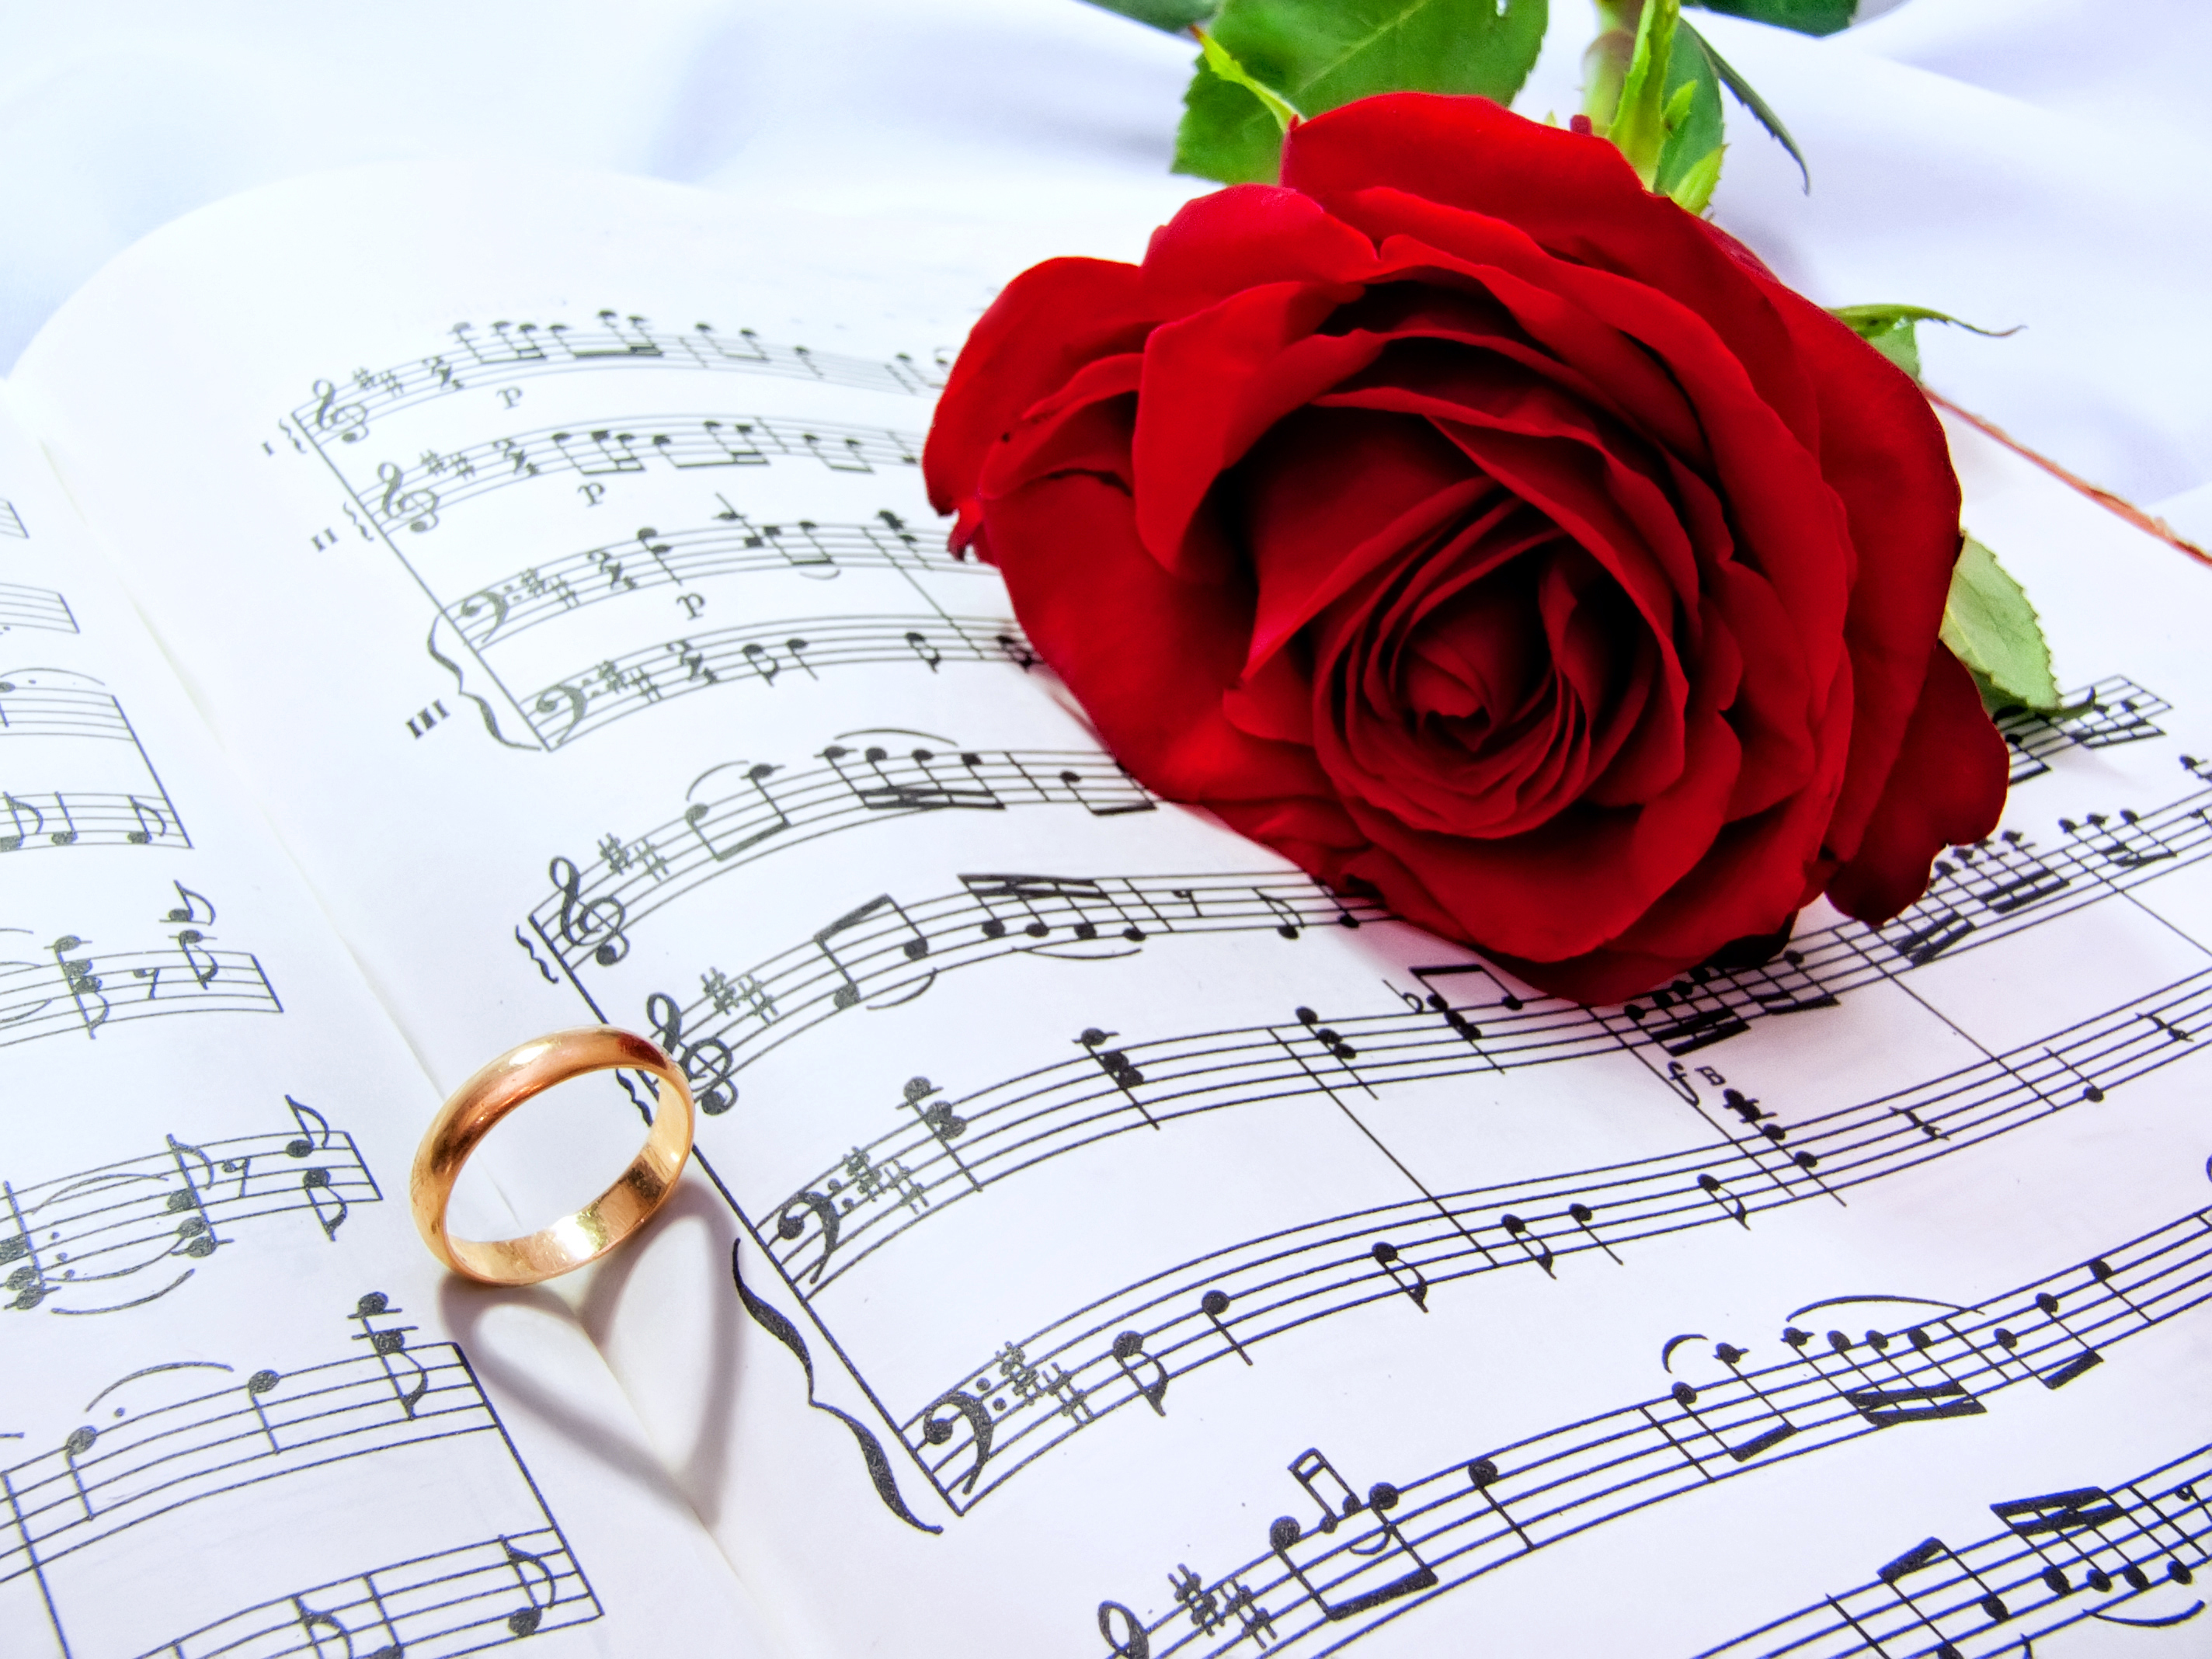 Choosing ceremonial music for your wedding get ordained for How do i get ordained to perform wedding ceremonies